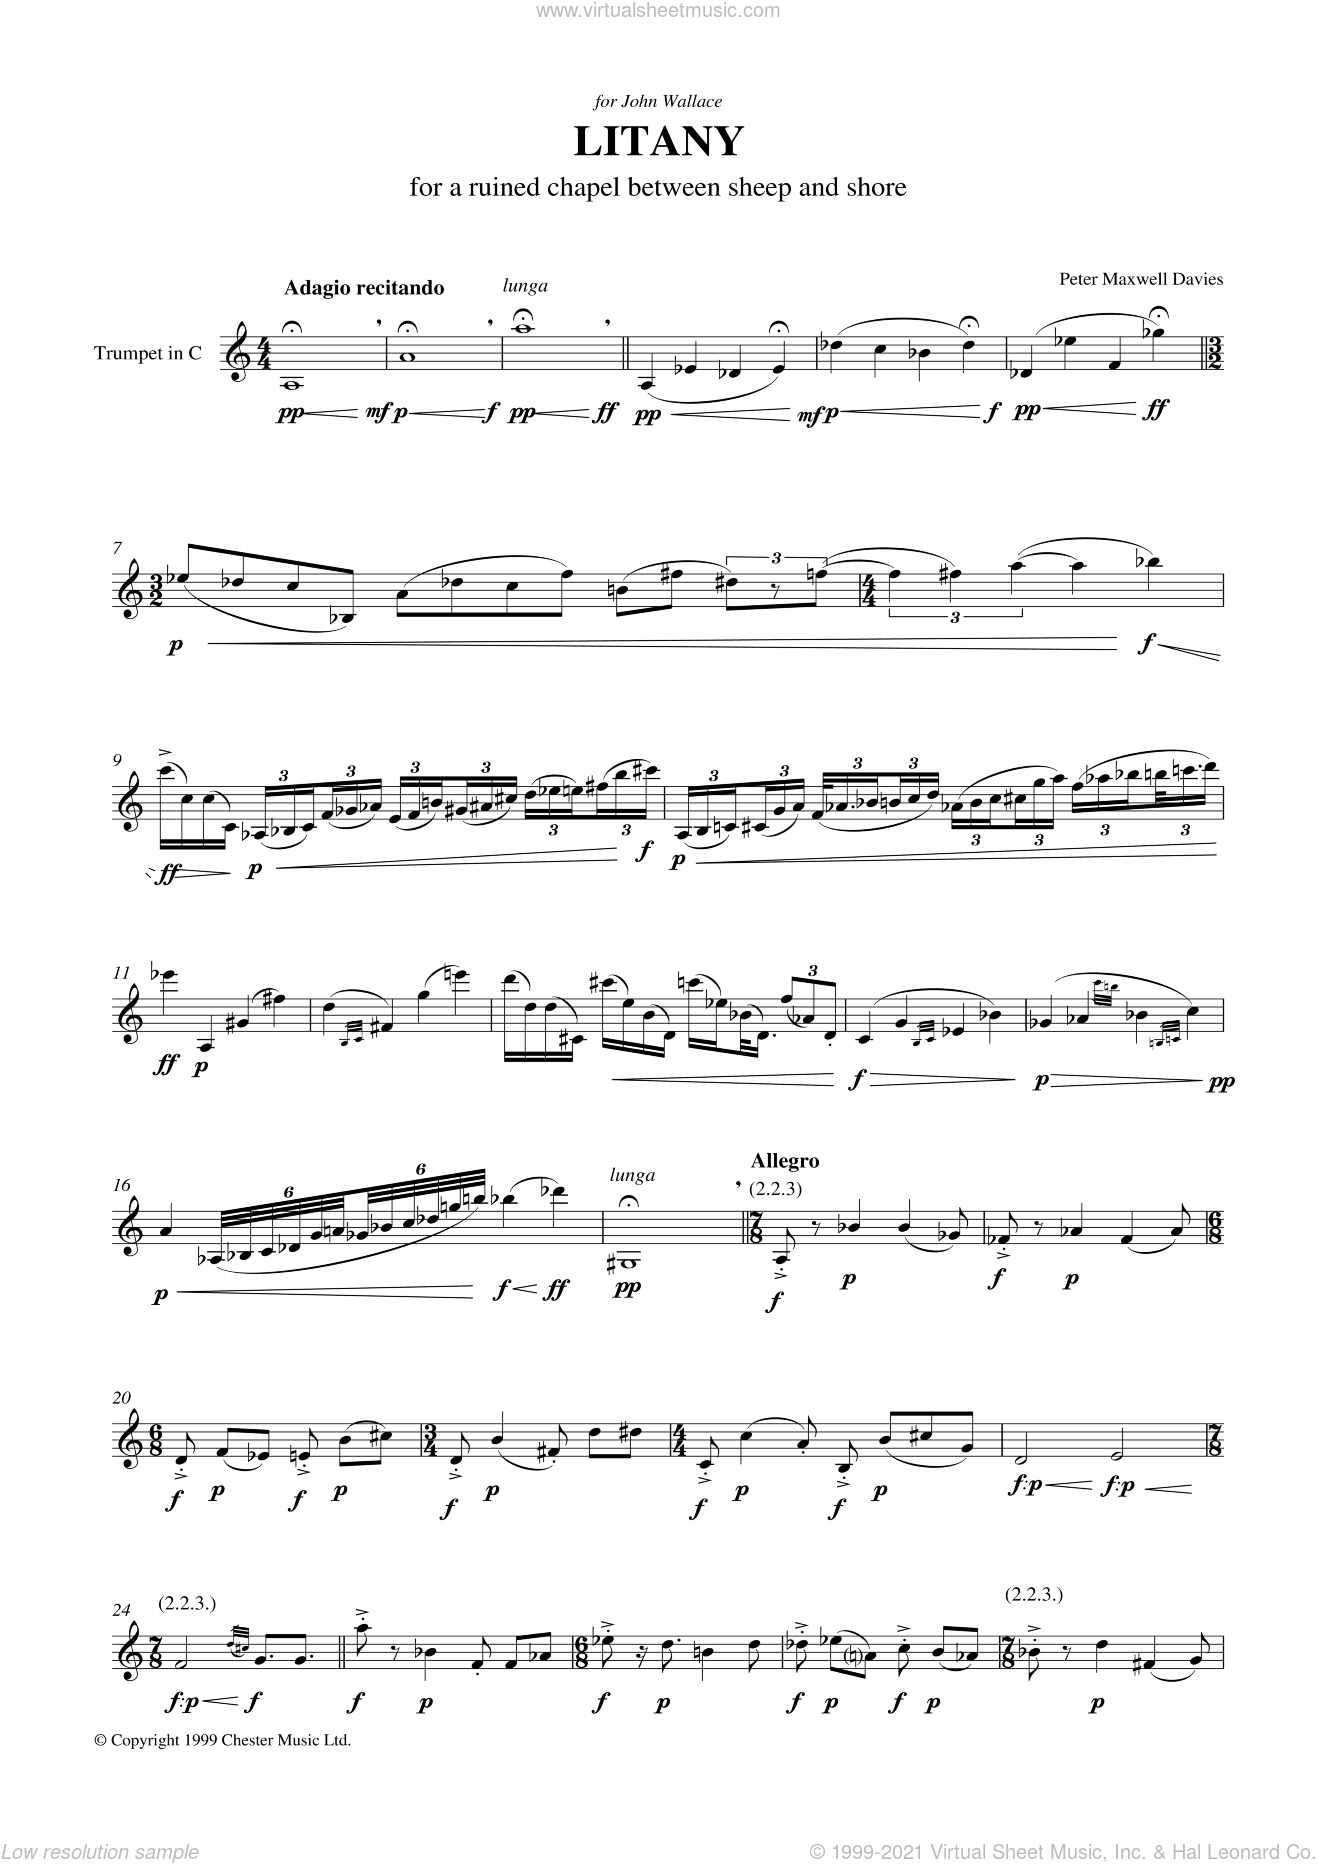 Litany For A Ruined Chapel Between Sheep And Shore sheet music for trumpet solo by Peter Maxwell Davies, classical score, intermediate skill level